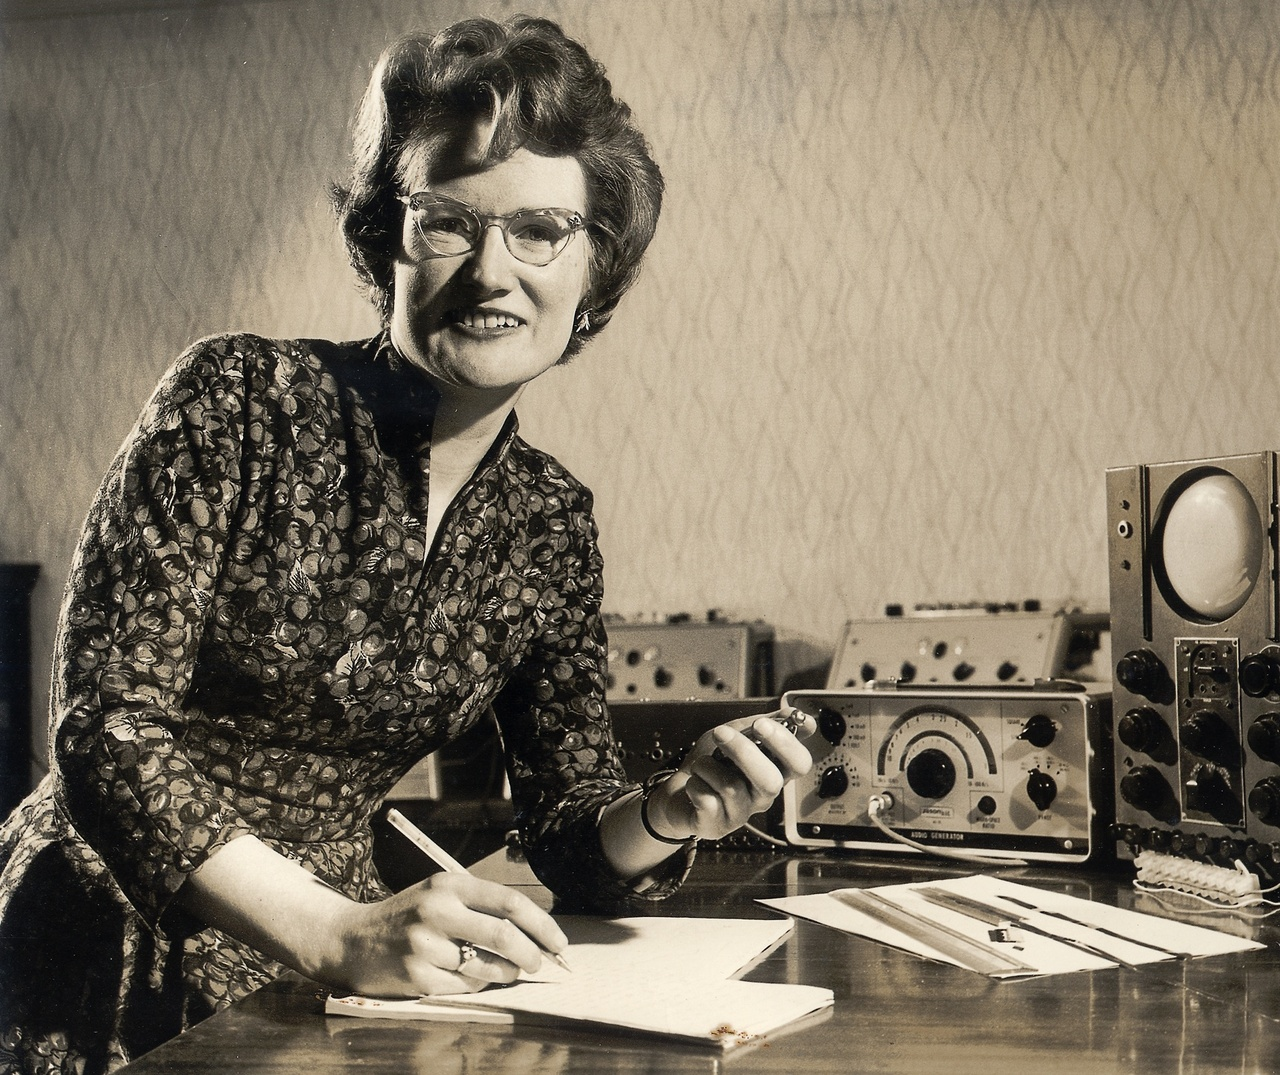 Bandcamp pick of the week: Daphne Oram - Sound Houses